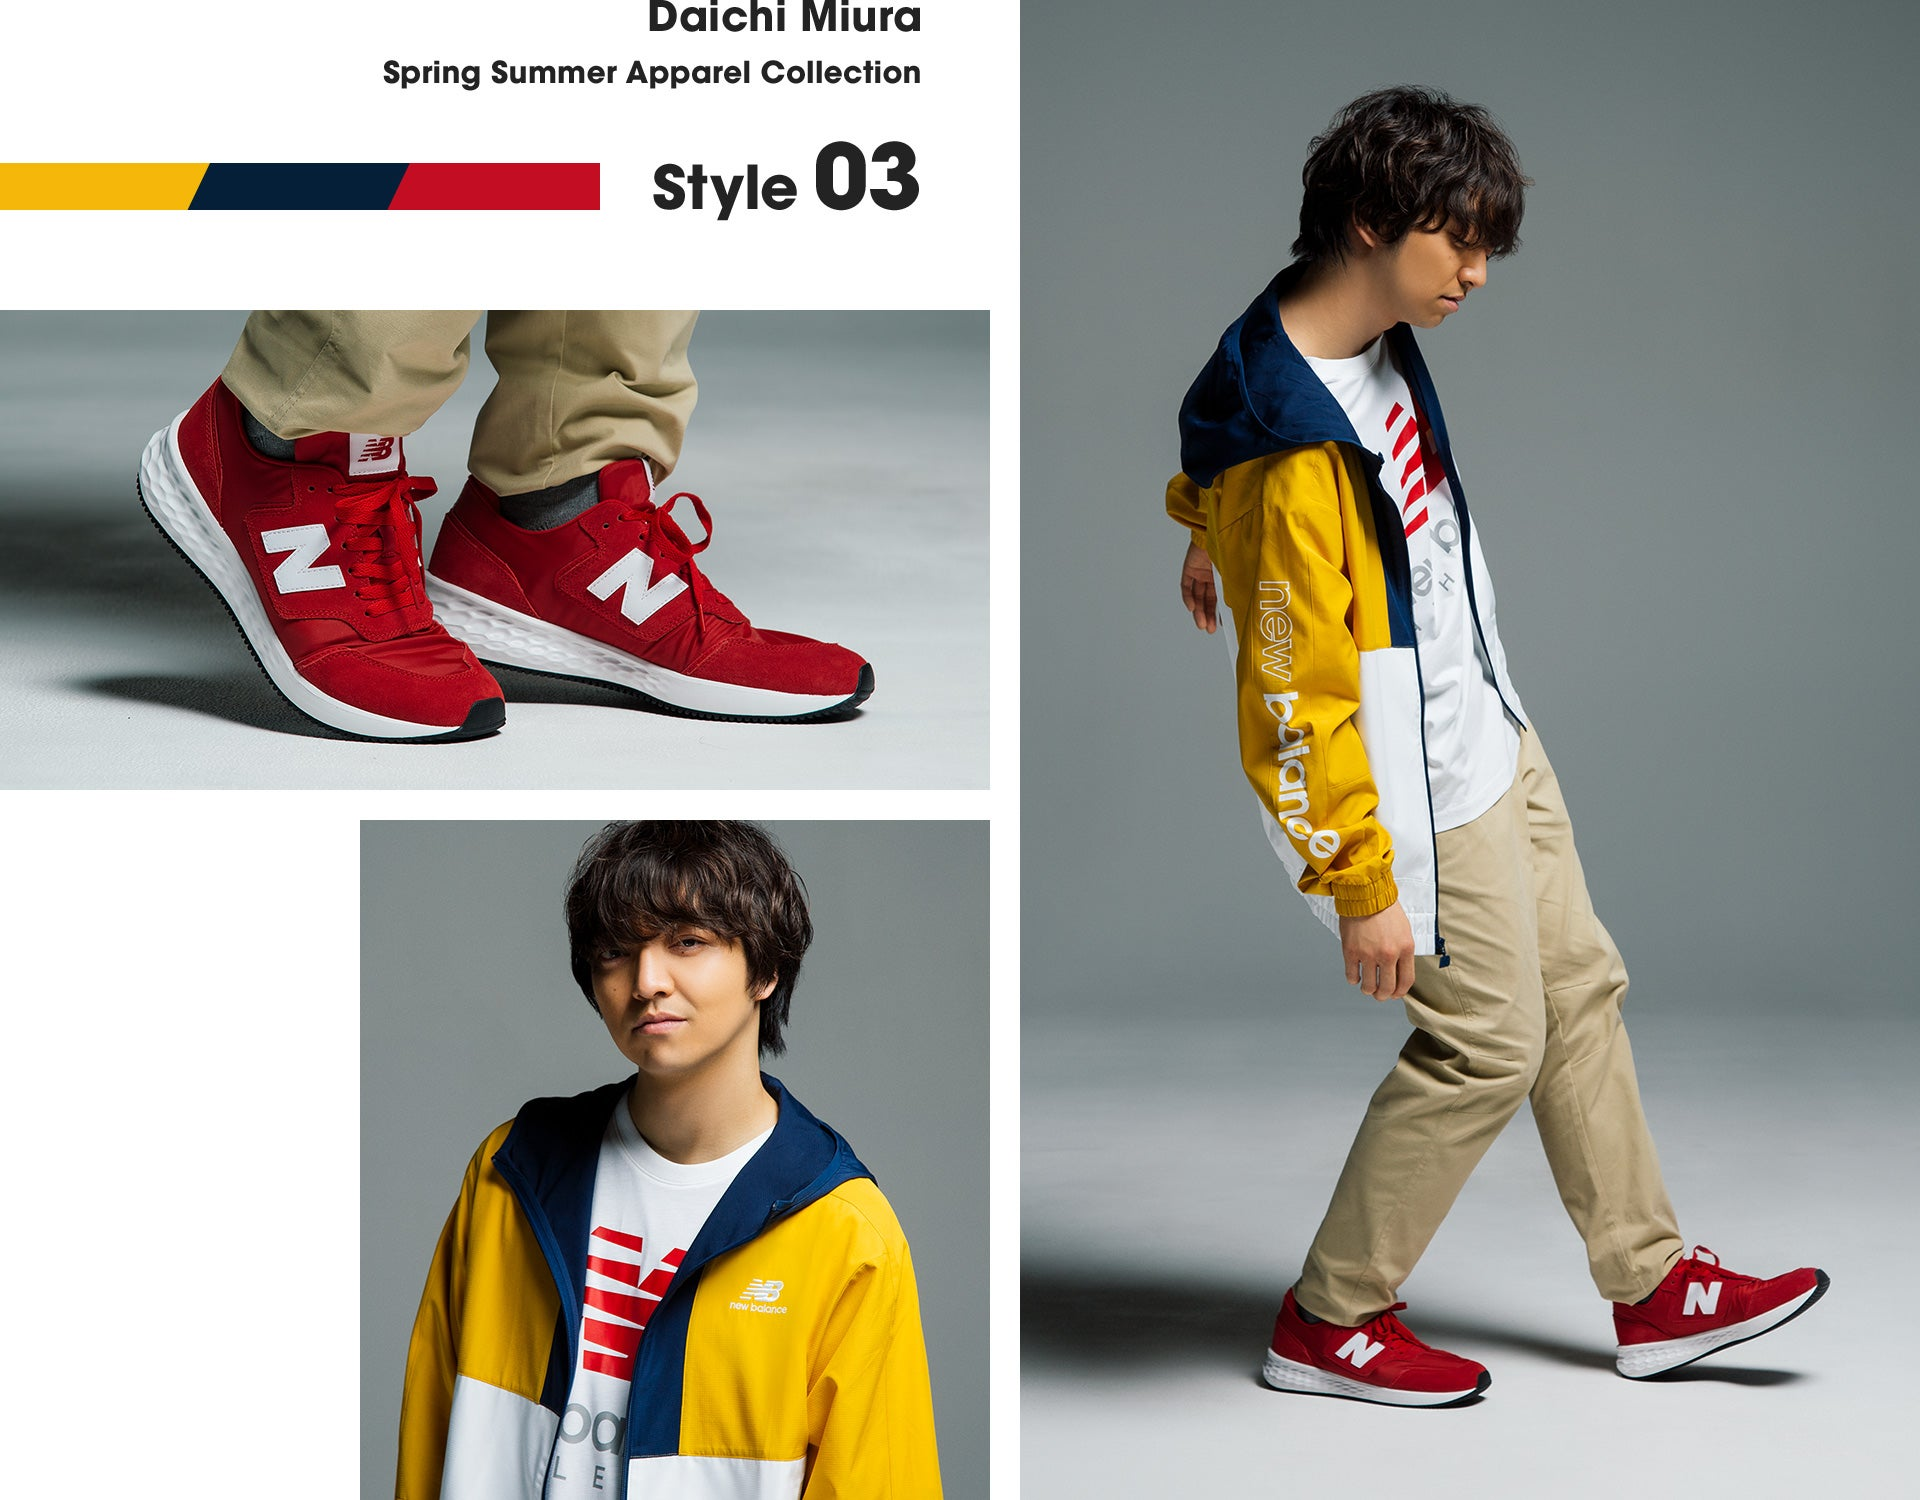 Daichi Miura. Spring Summer Apparel Collection Style03